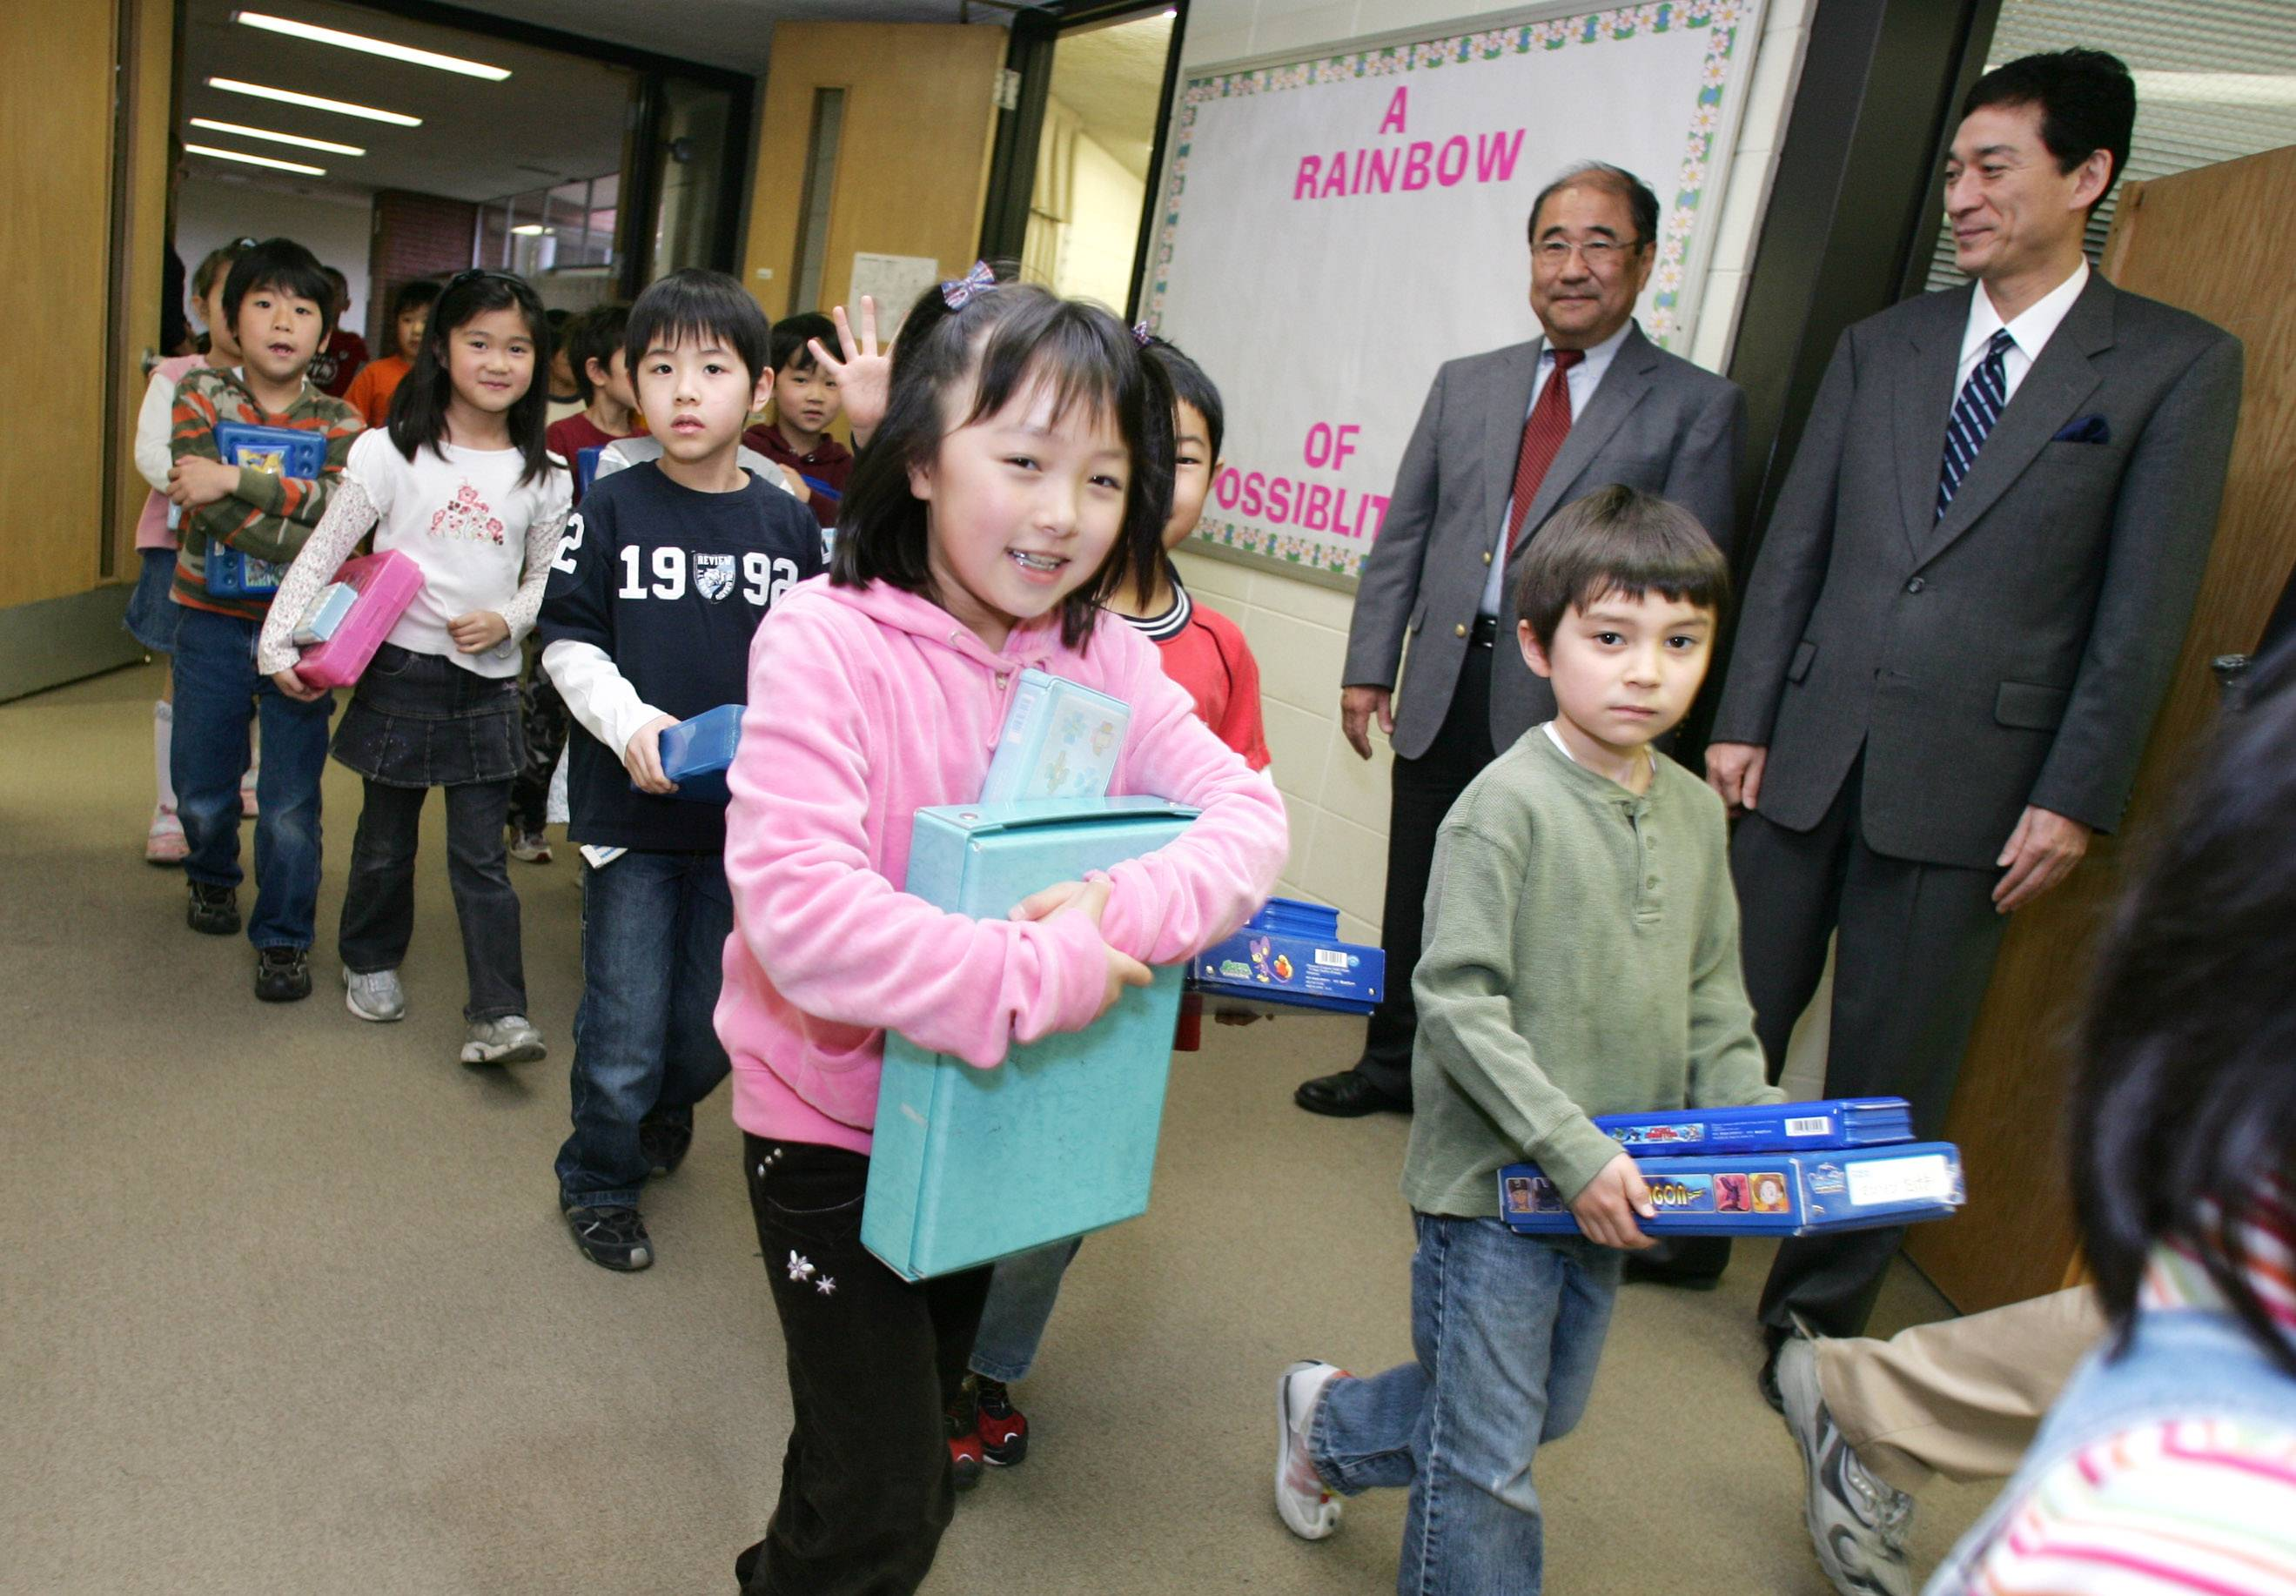 Chicago Futabakai Japanese School, which serves elementary and junior high school students, plans to extend its lease to operate out of the former Rand Junior High School in Arlington Heights.